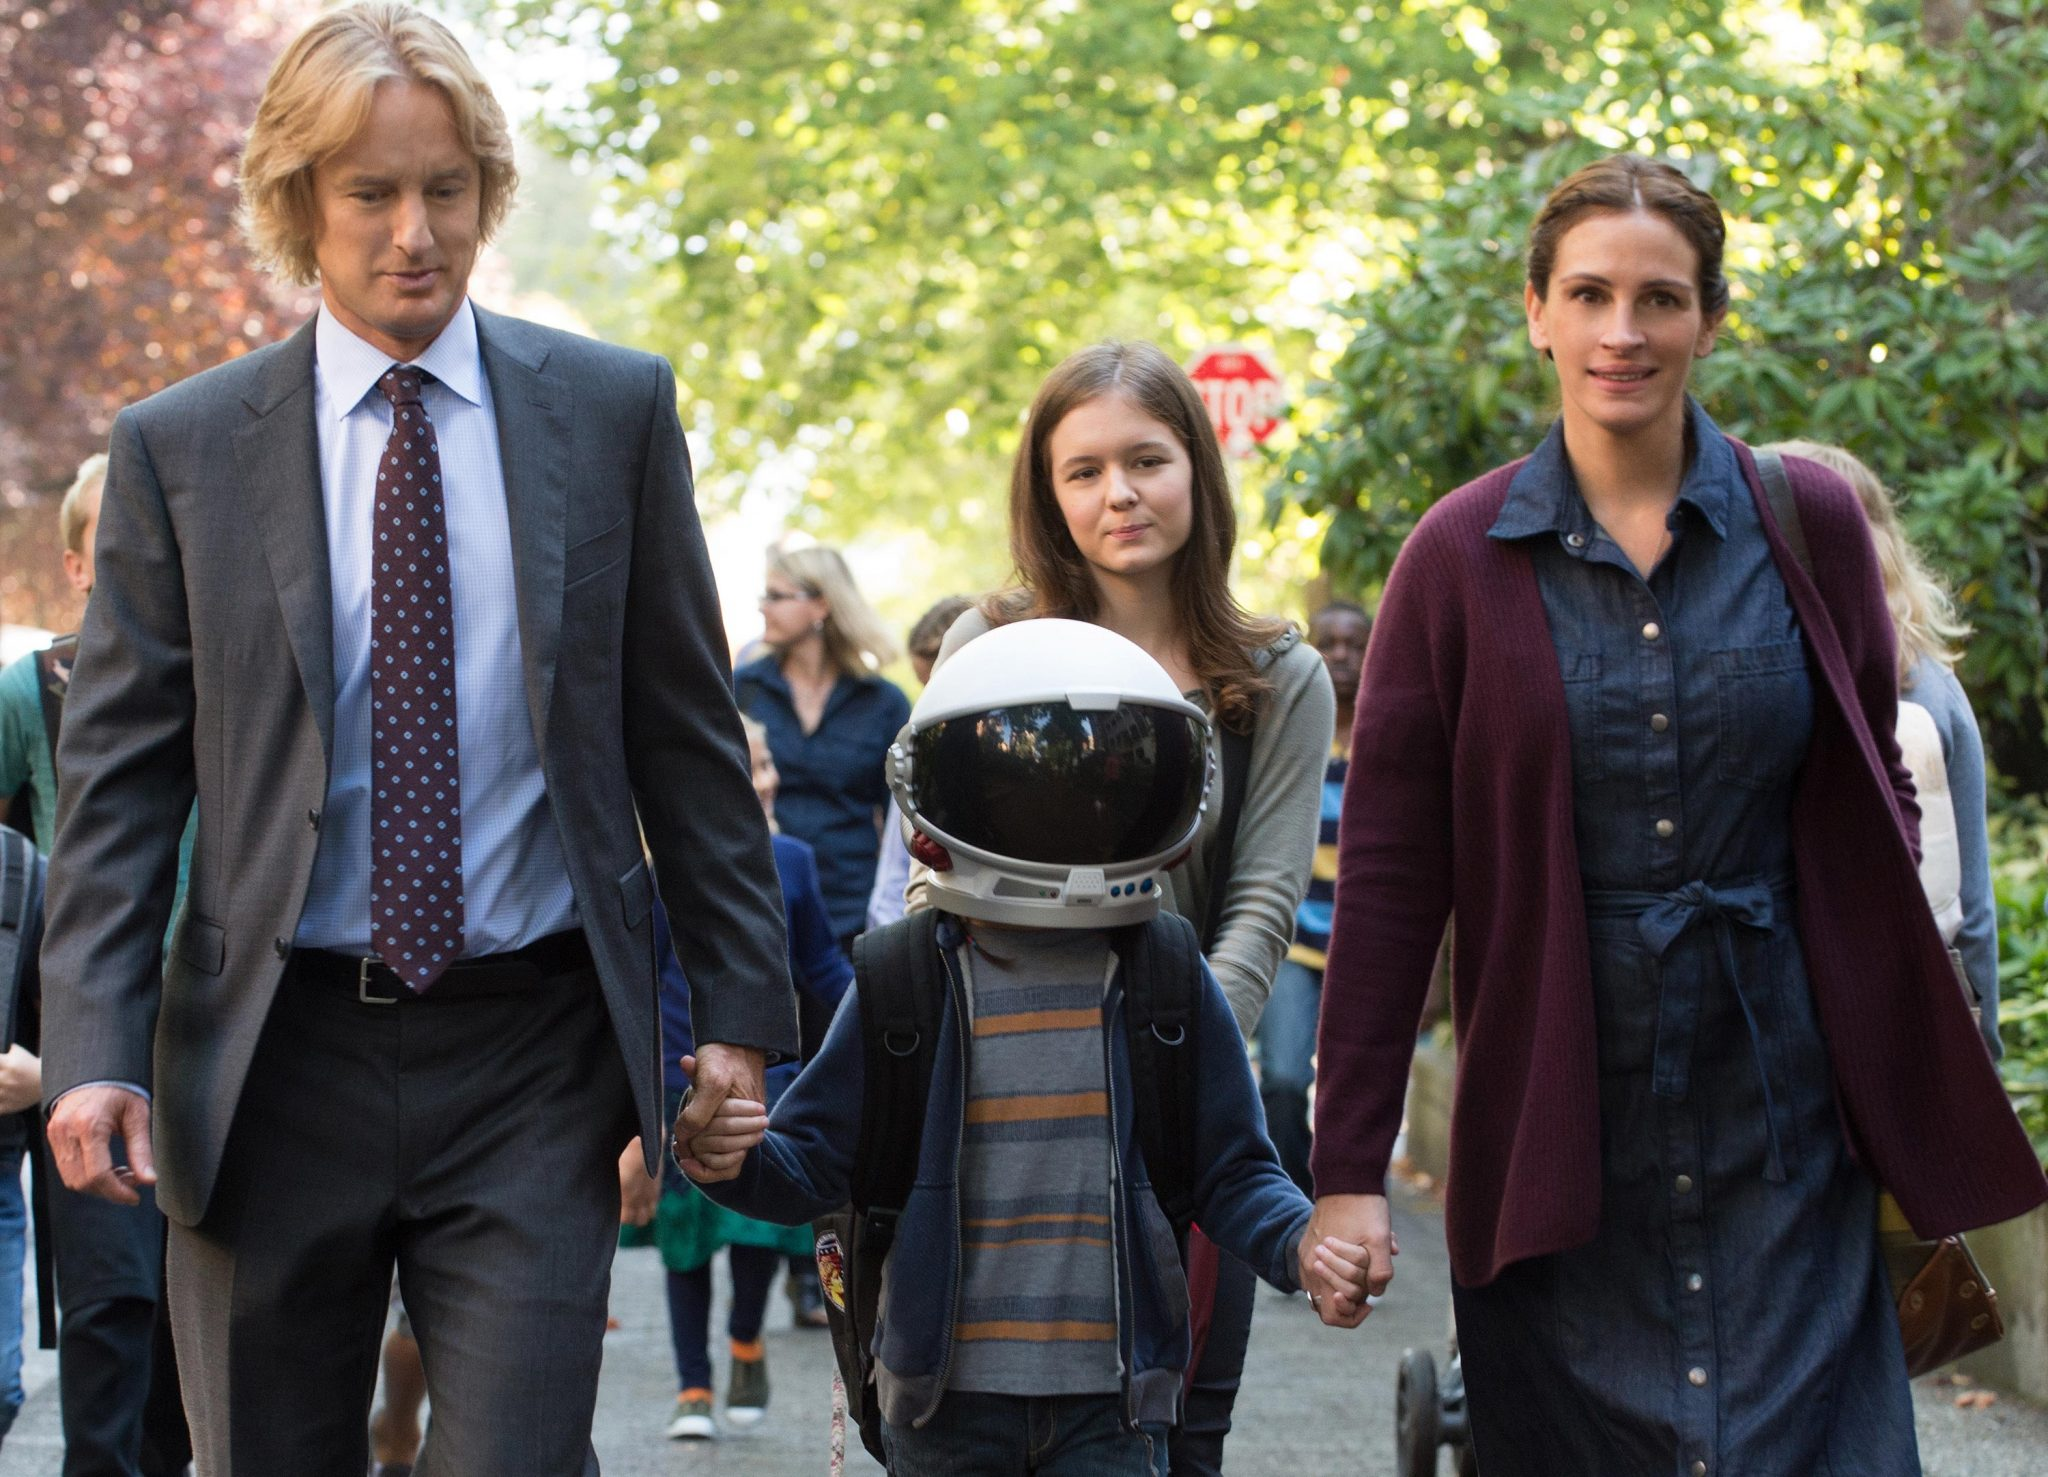 'Wonder' is a refreshing family film that plays the heartstrings like a musician